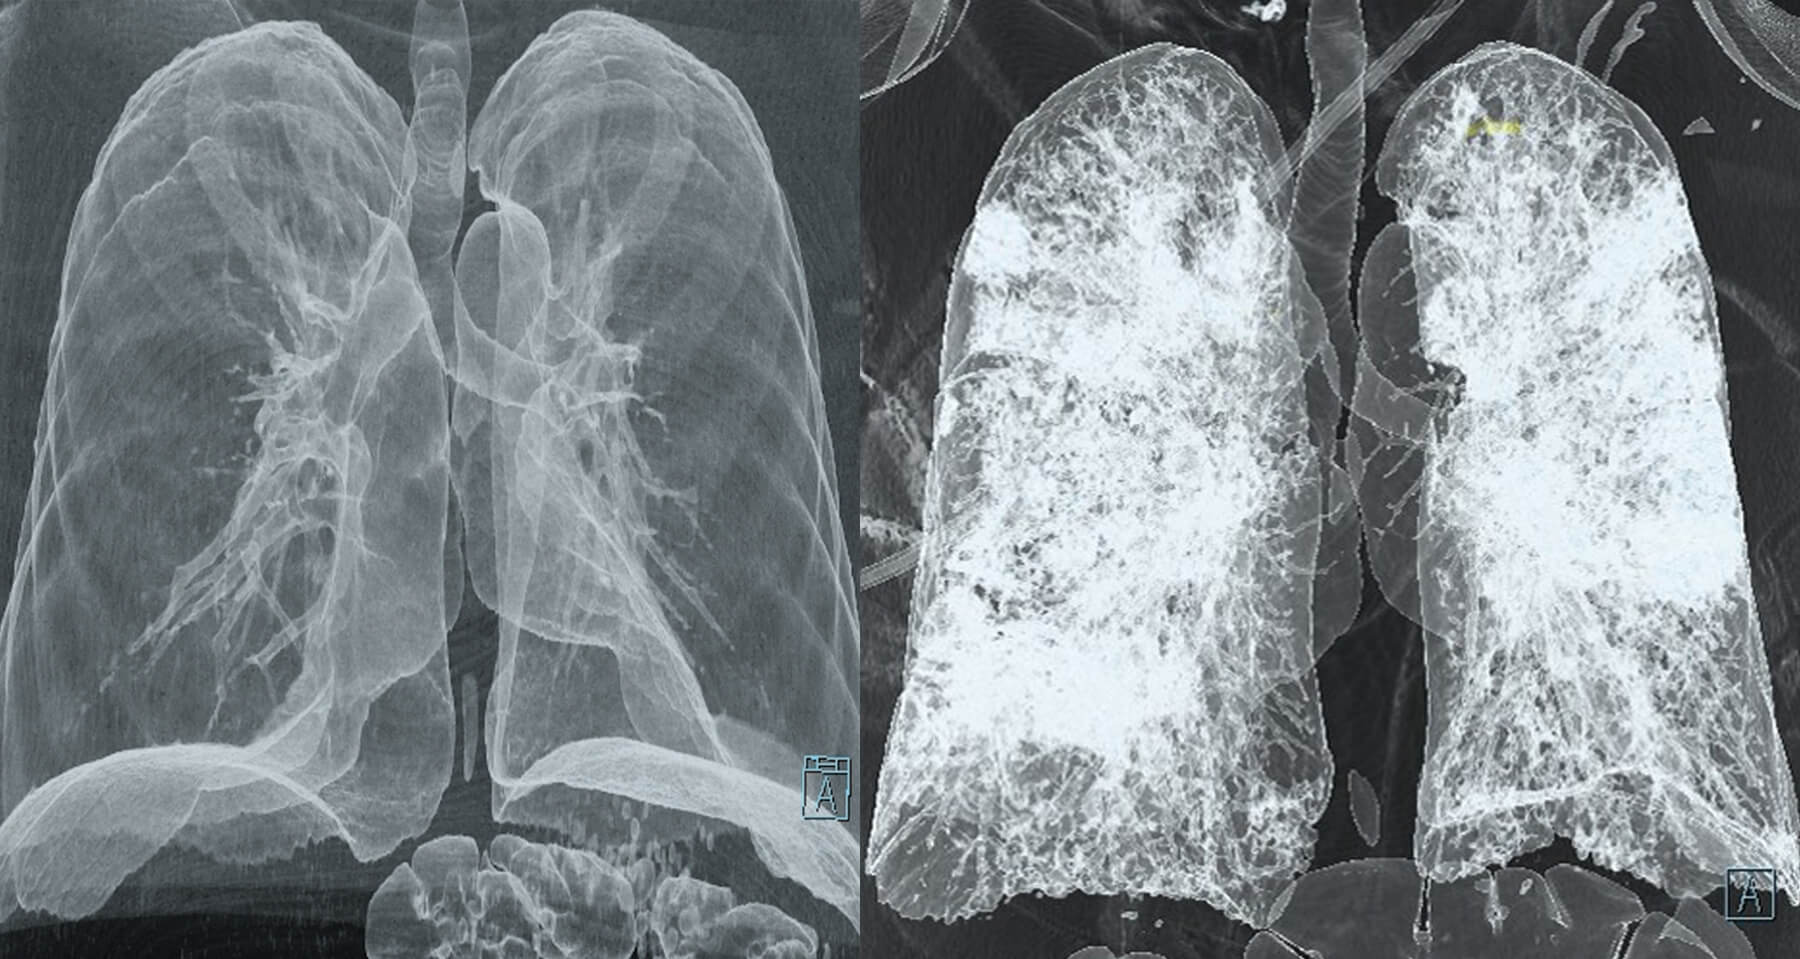 Side-by-side CT scans of lungs. The left hand lungs are healthy, the right hand lungs have covid-19 and show a cloudy overlay.